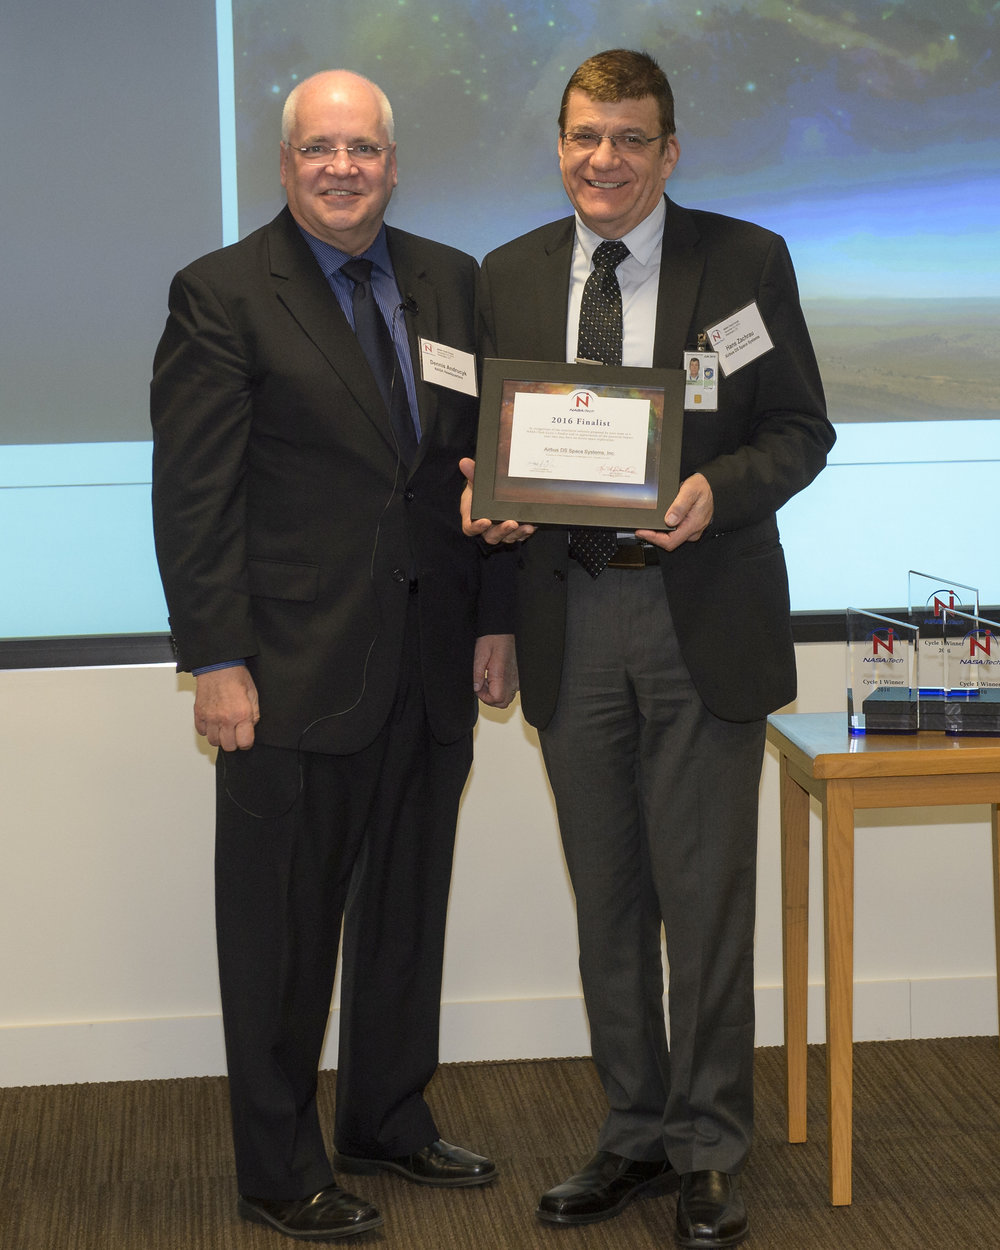 Hans Zachrau, from  Airbus DS Space Systems, MAPT Team,  accepted a certificate from Acting Chief Technologist Dennis Andrucyk recognizing the organization  as a 2016 NASA iTech finalist.